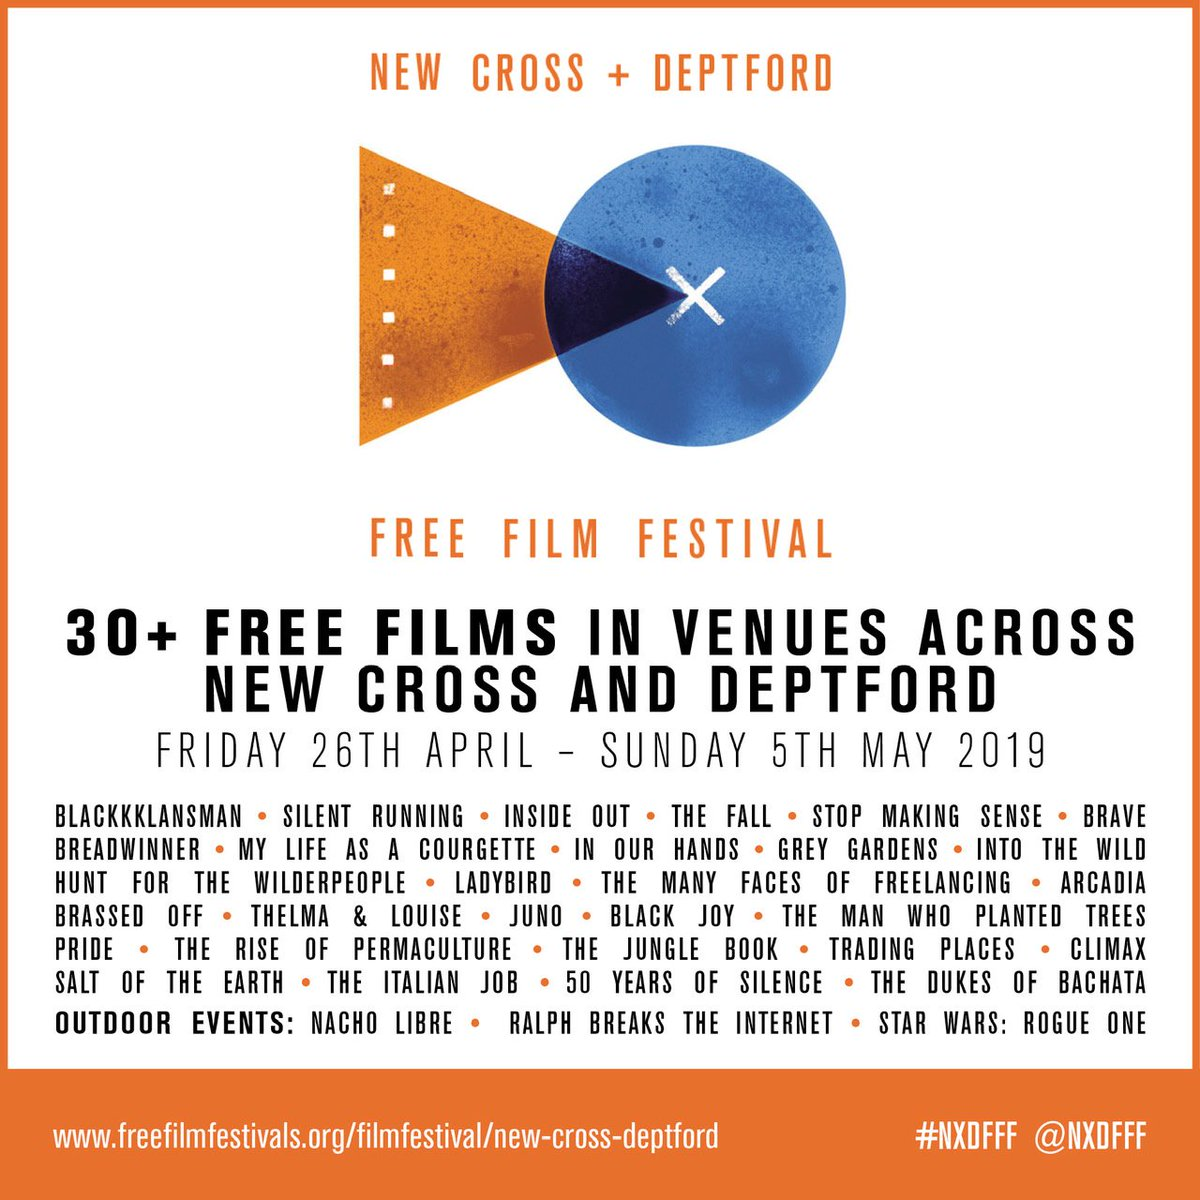 Here's a little taster for anyone who's excited for the 8th annual @nxdfff. Free films and events over 10 days starting at the end of April. We'll be announcing the full programme this week!  #freefilm #nxdfff